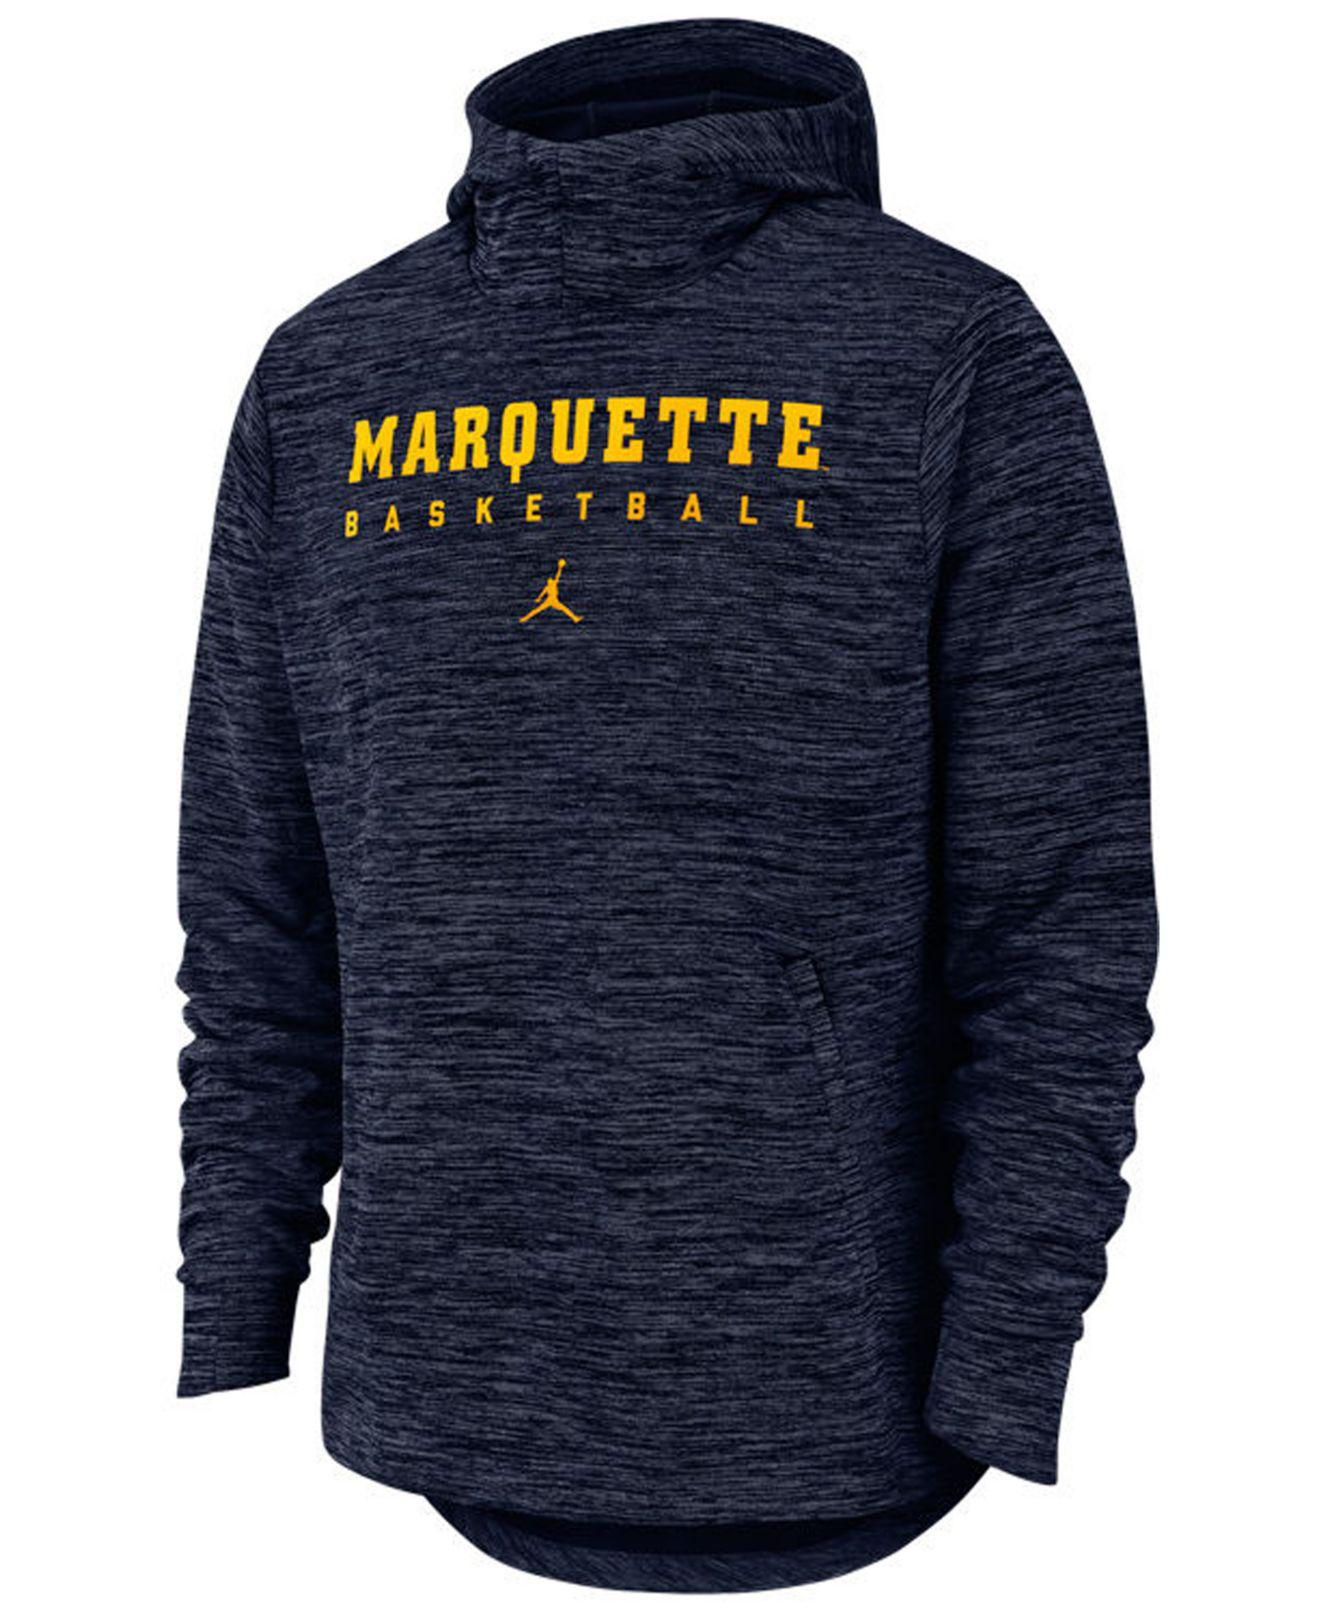 04954842d Lyst - Nike Marquette Golden Eagles Spotlight Pullover Hooded ...